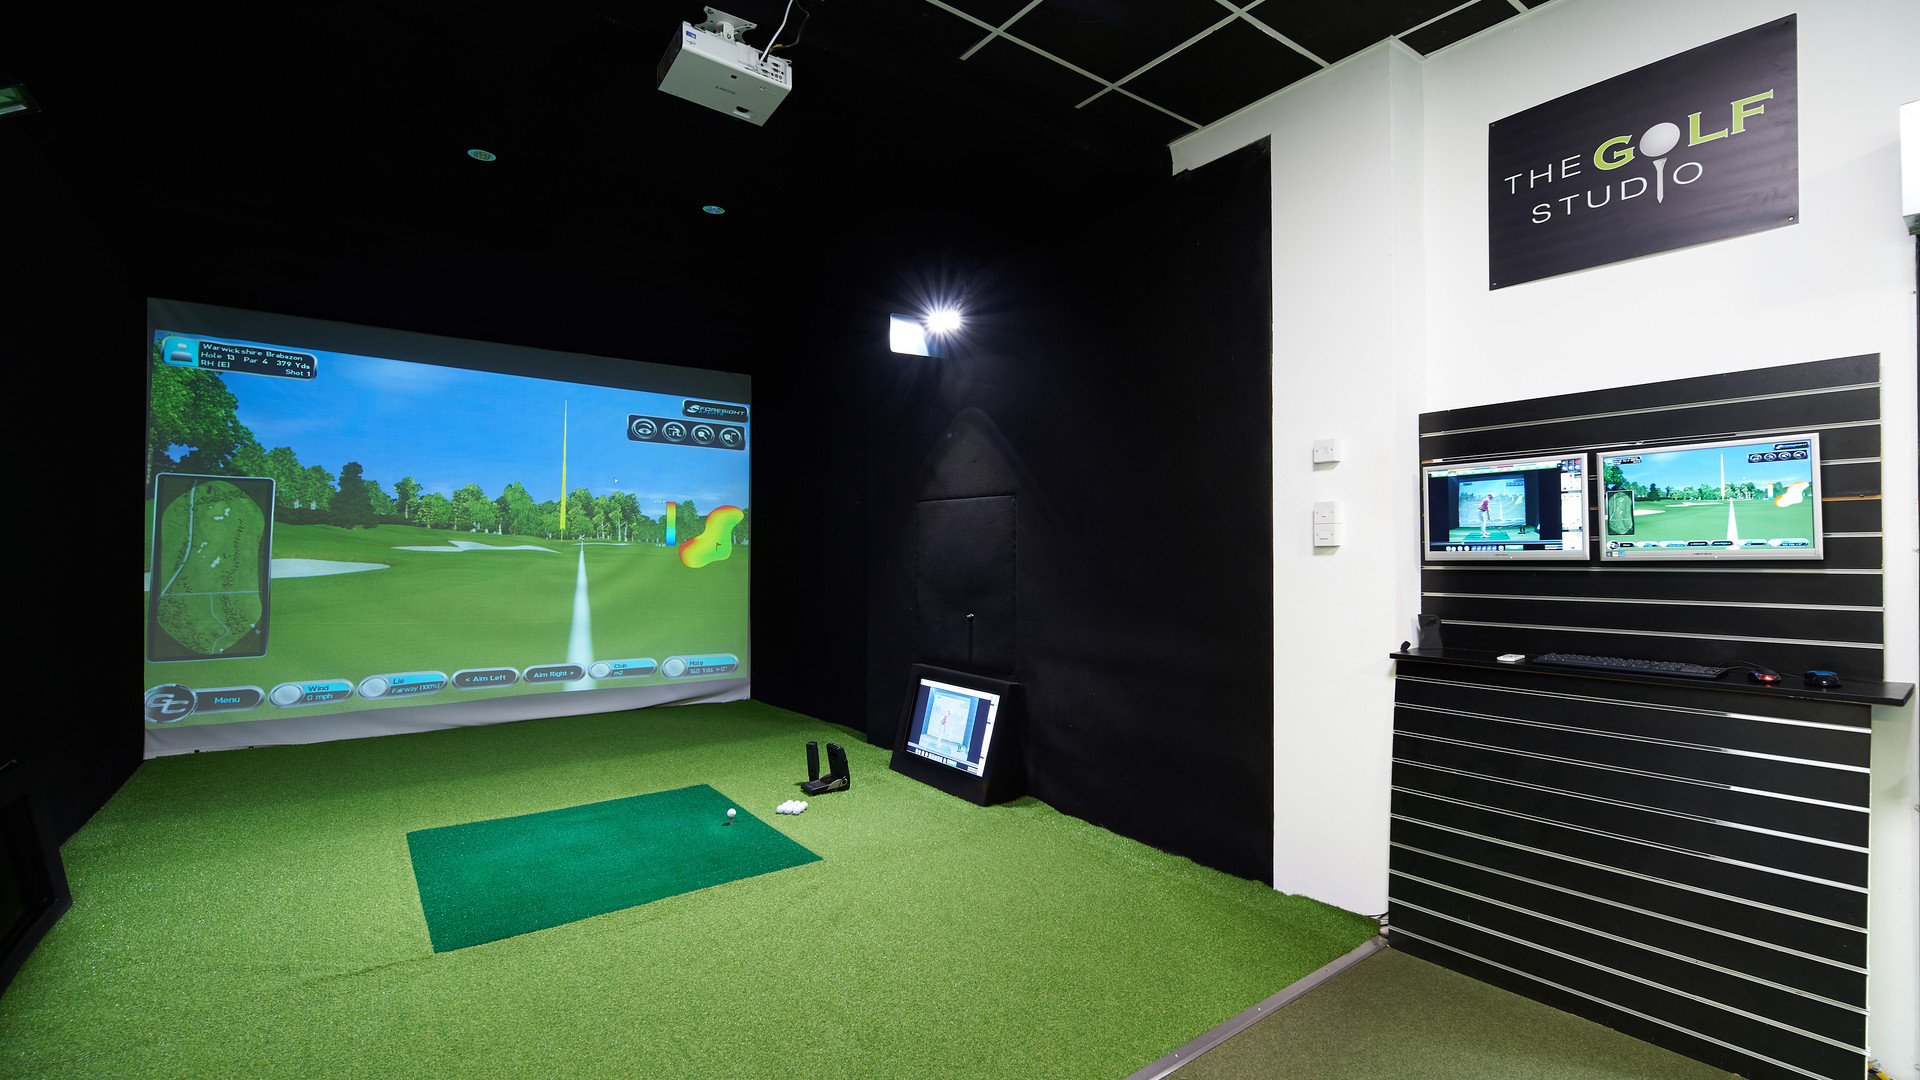 The Golf Studio set up for coaching